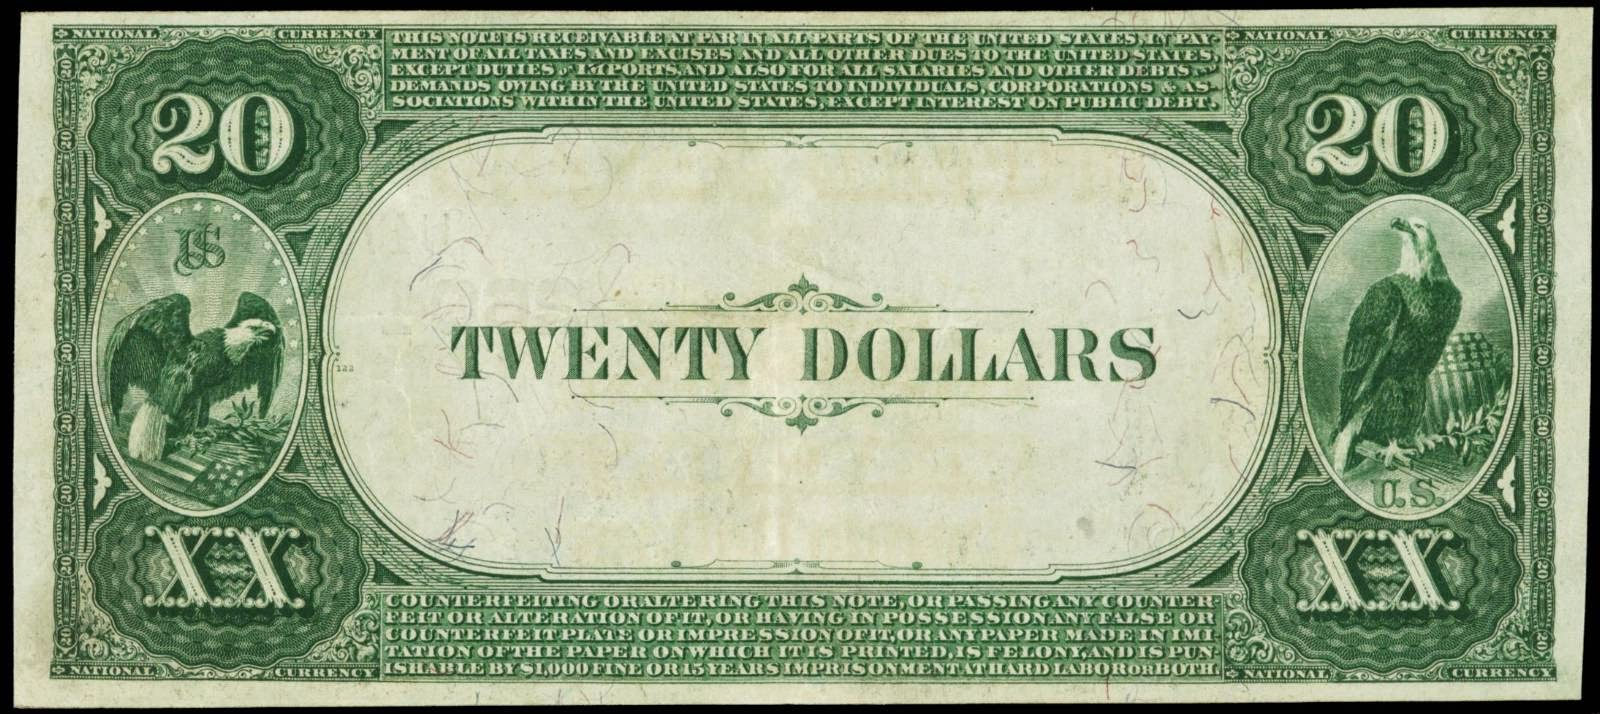 US National Currency 1882 Twenty Dollars Value Back